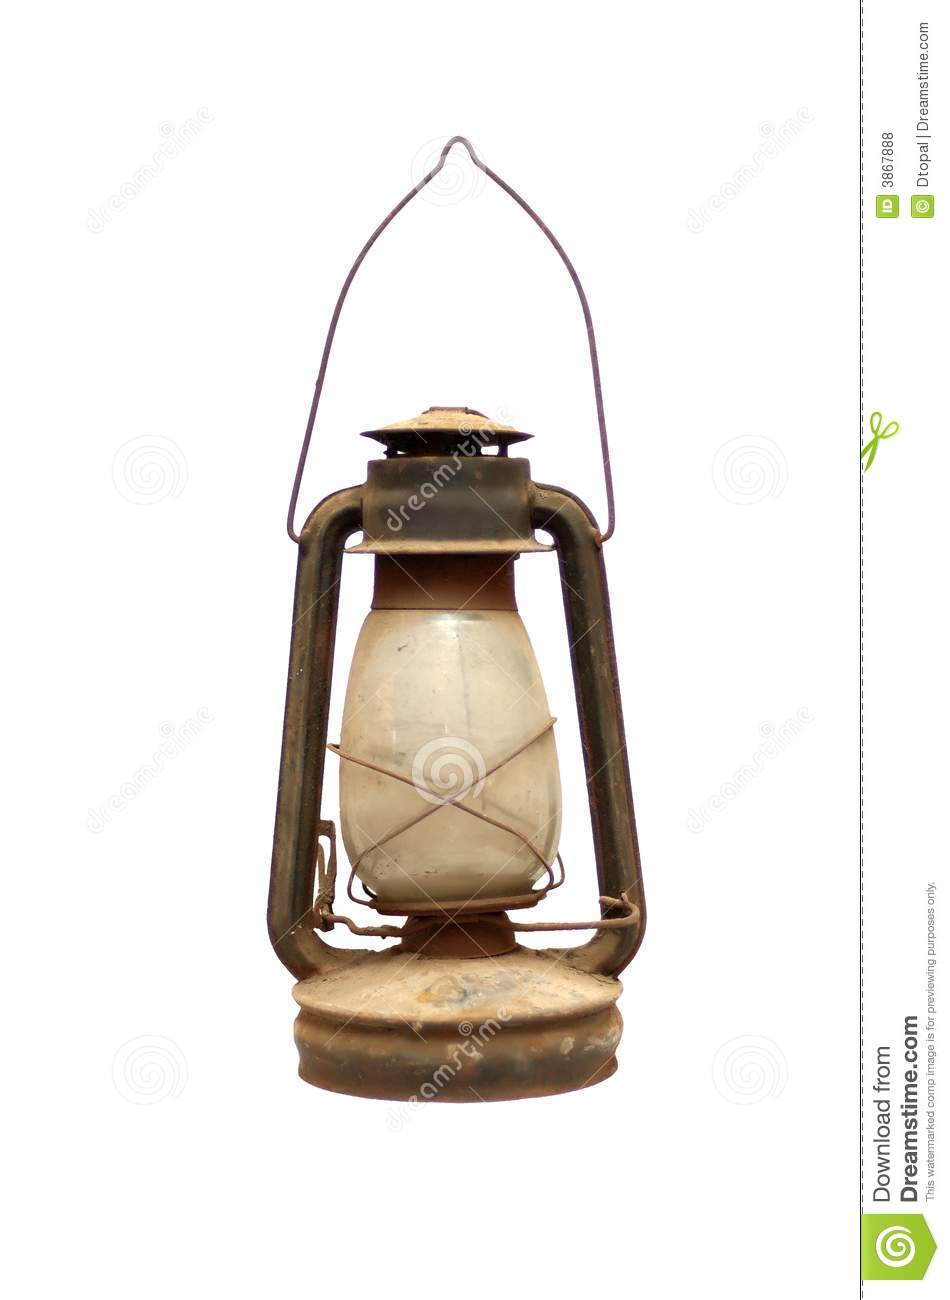 Old Kerosene Lamp Stock Photo Image Of Antique Kerosene